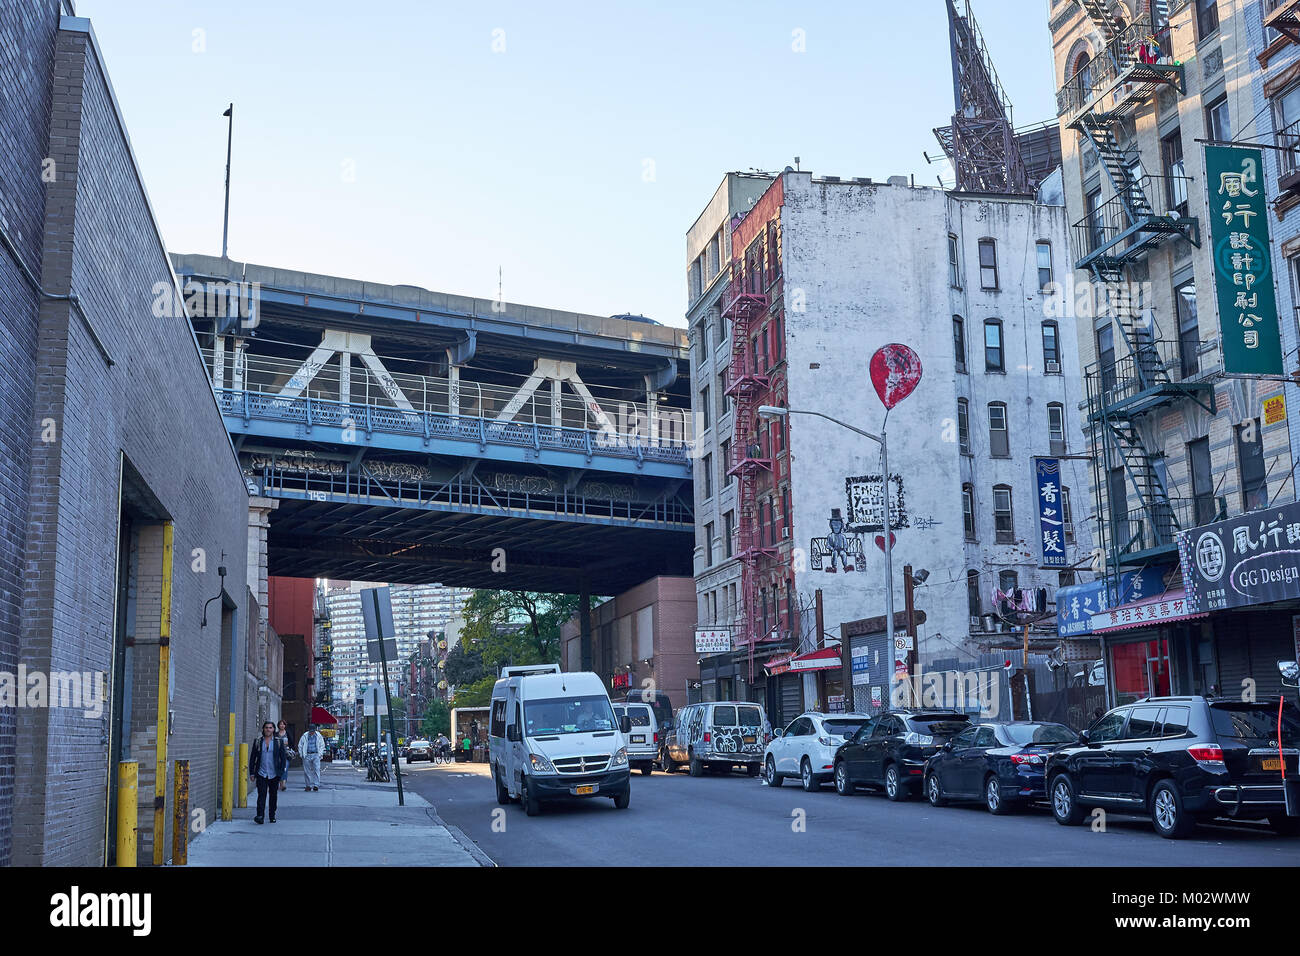 NEW YORK CITY - SEPTEMBER 24, 2016: A look down Henry Street in Lower Manhattan, with Manhattan Bridge crossing - Stock Image